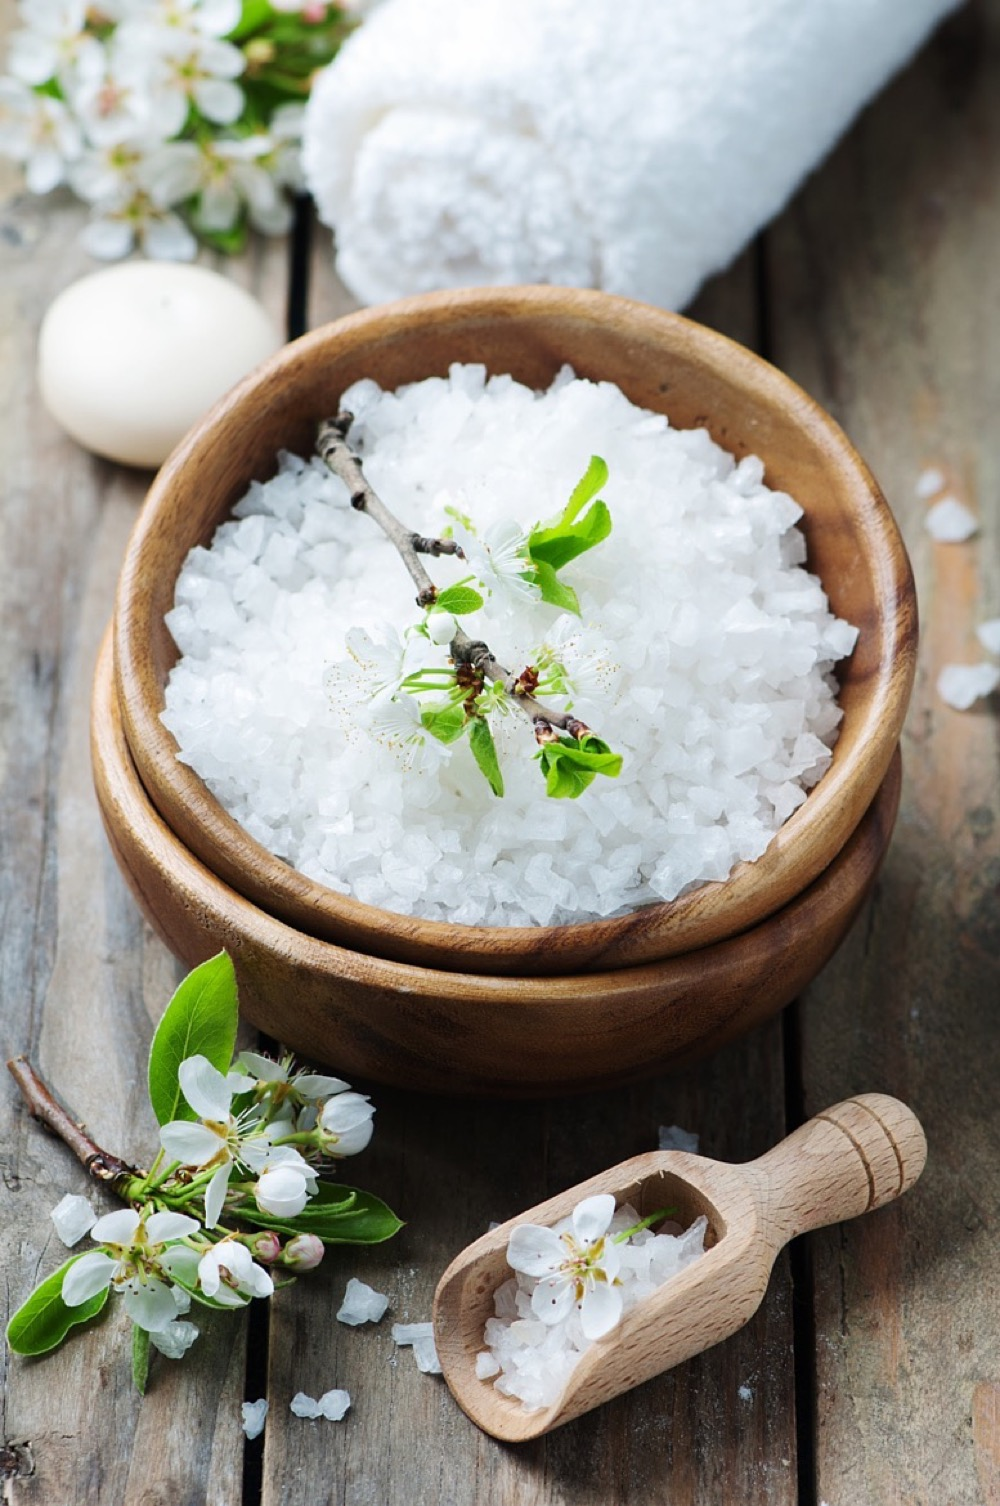 White salt and flowers for spa treatment